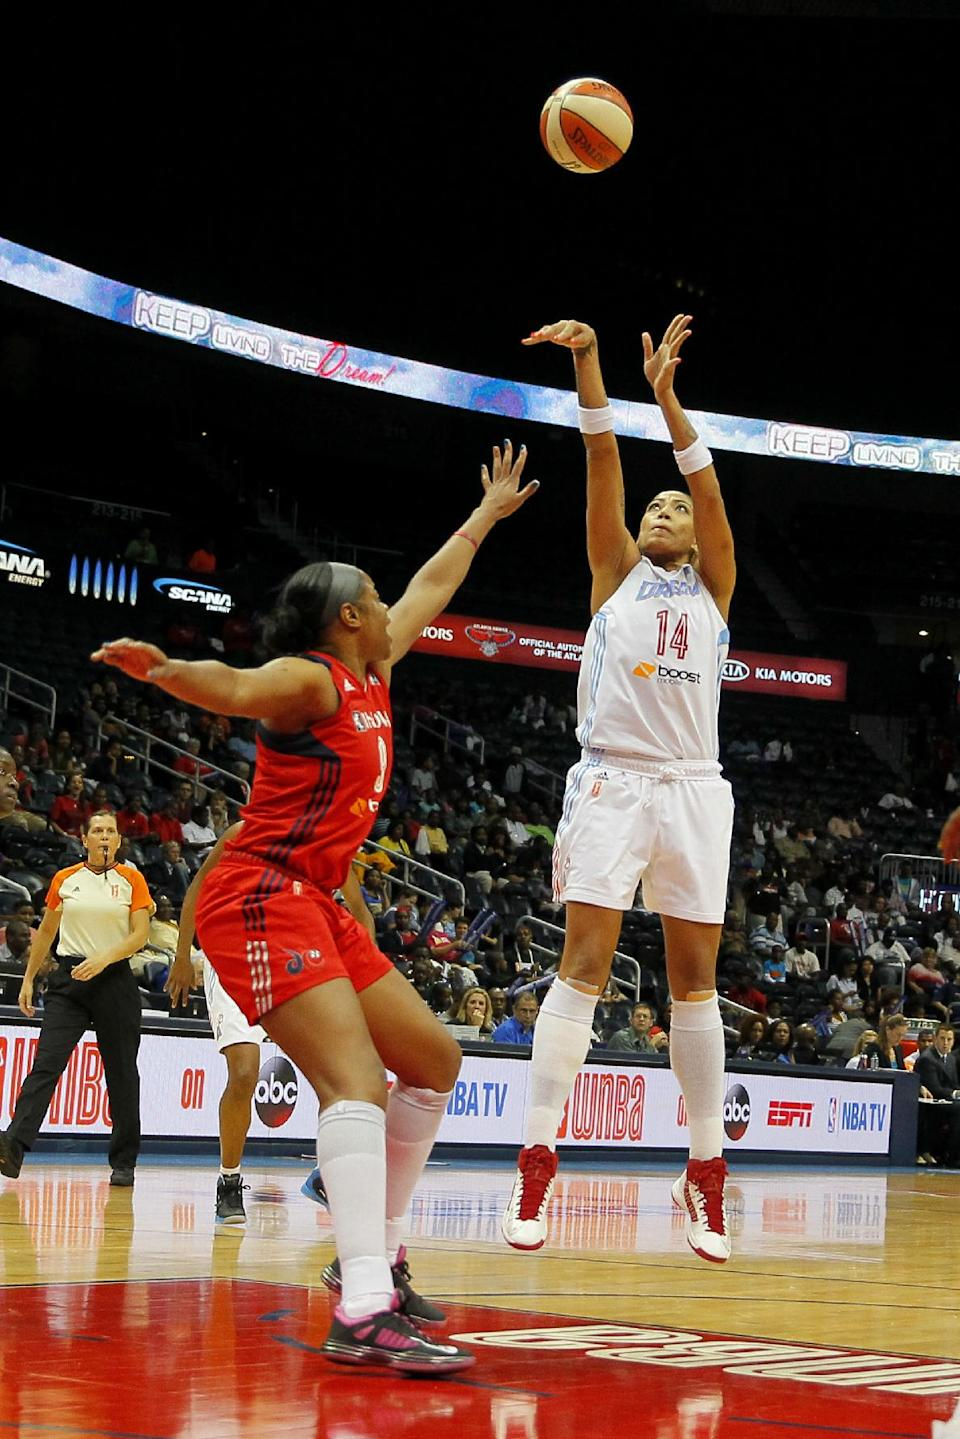 Dream beat Mystics in Game 3 to advance